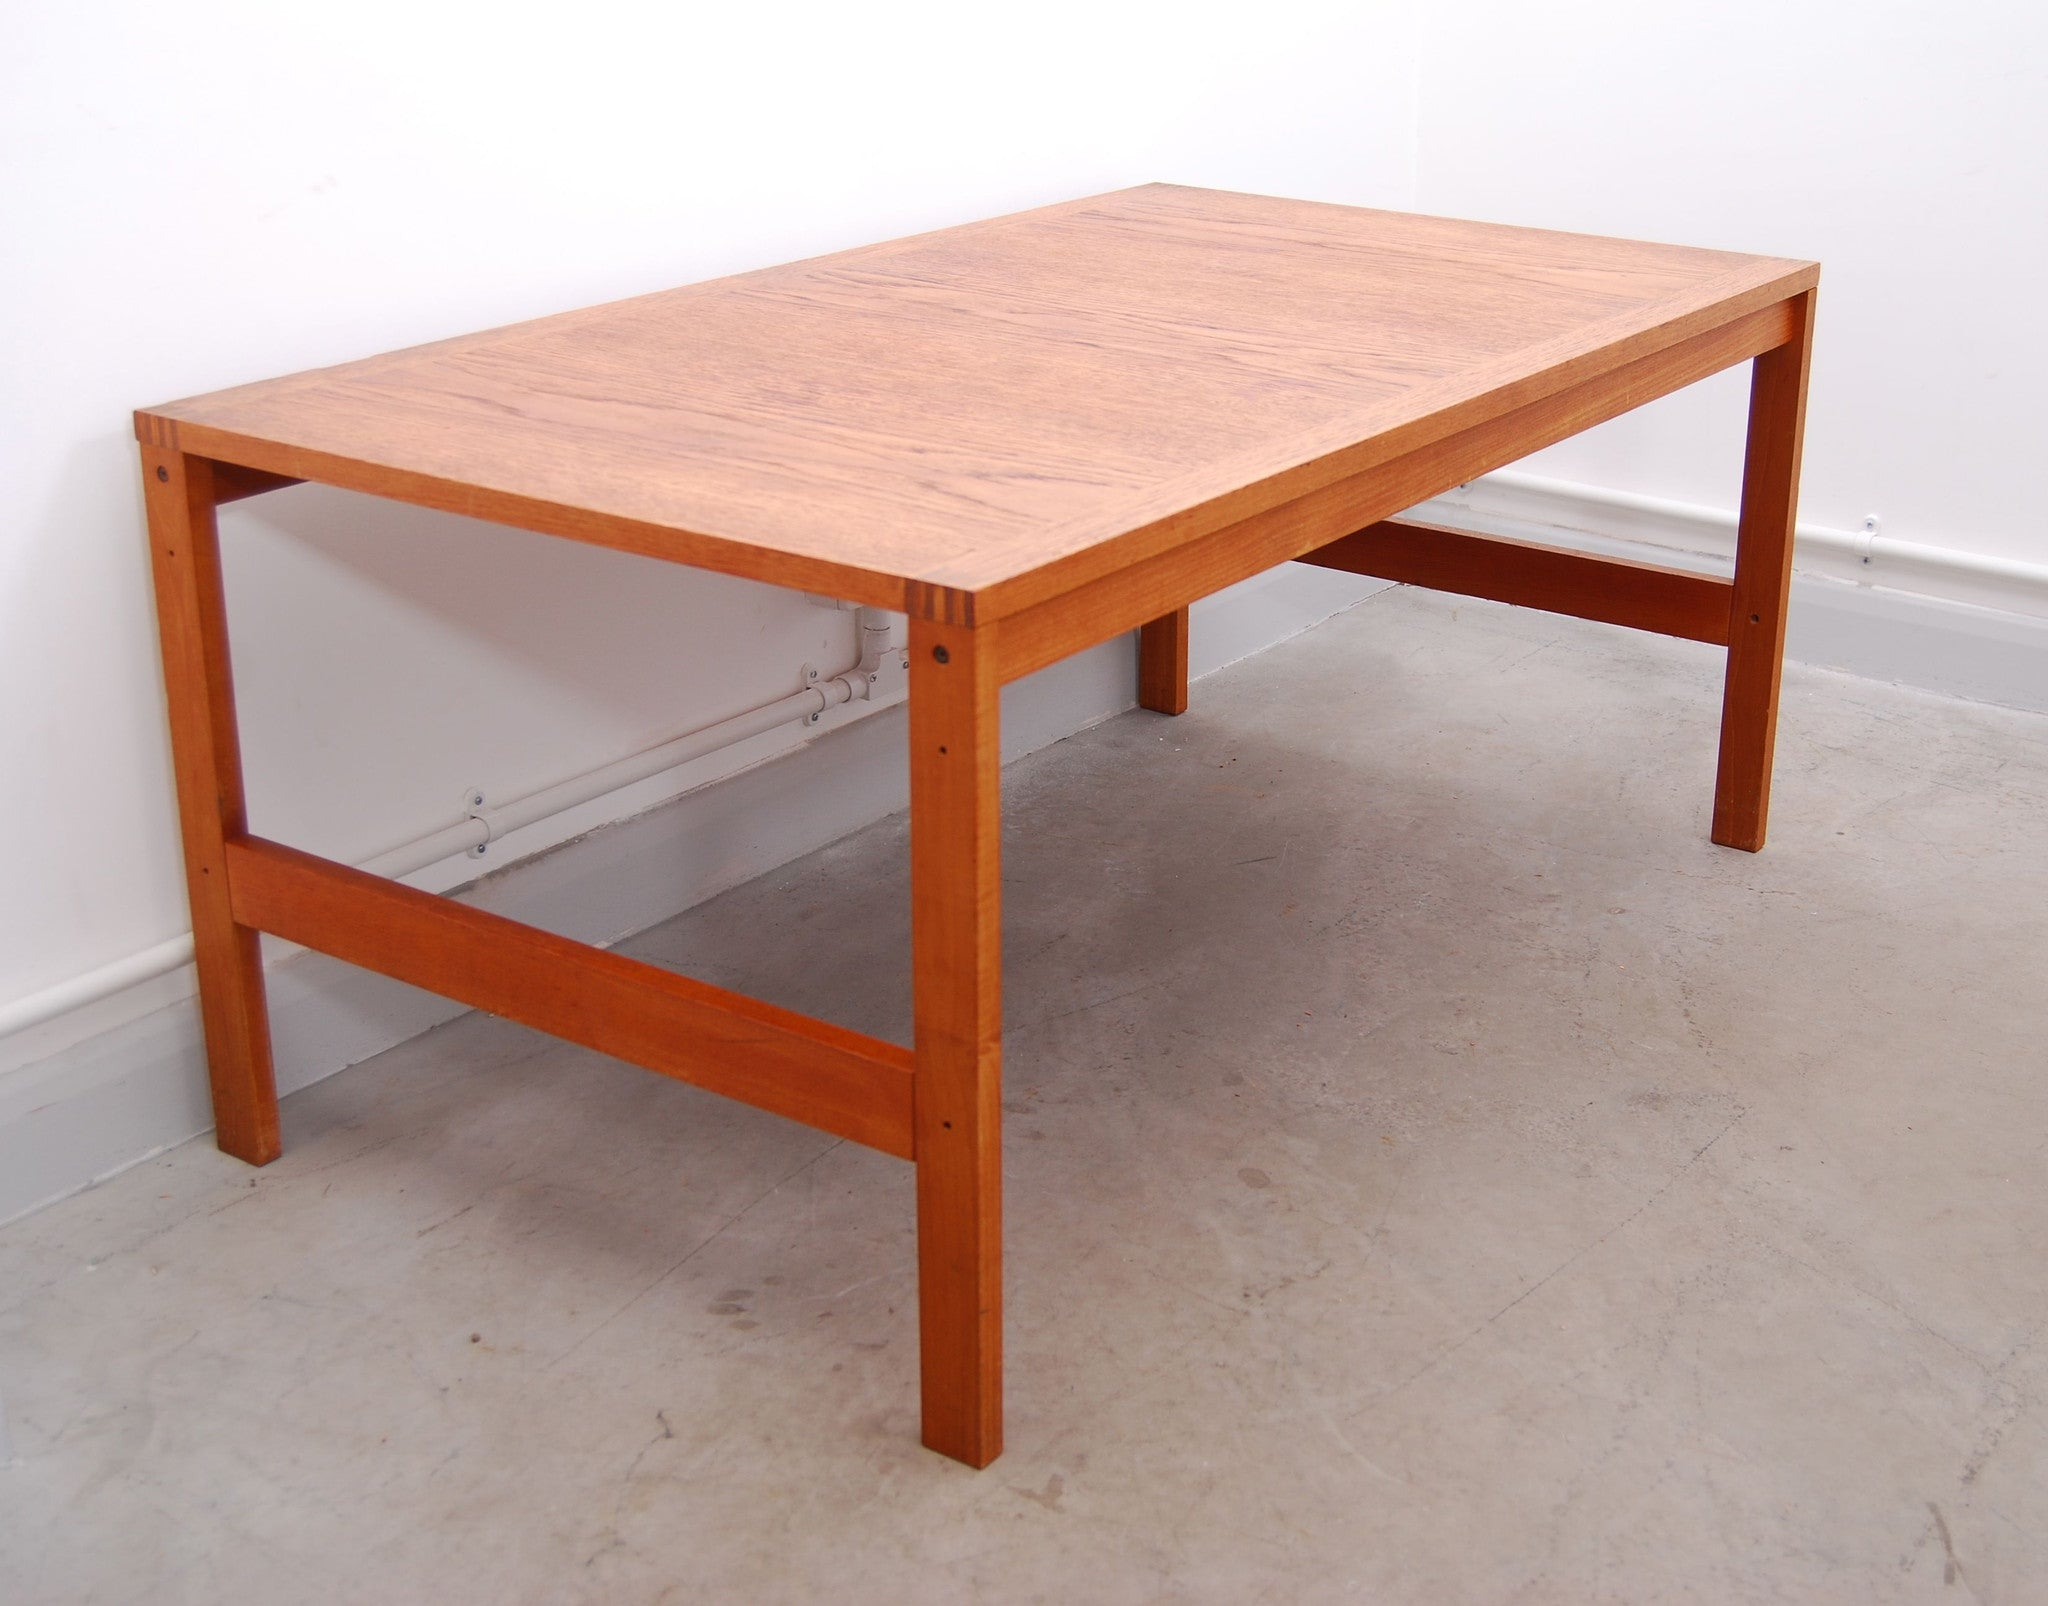 Teak coffee table produced by Cado